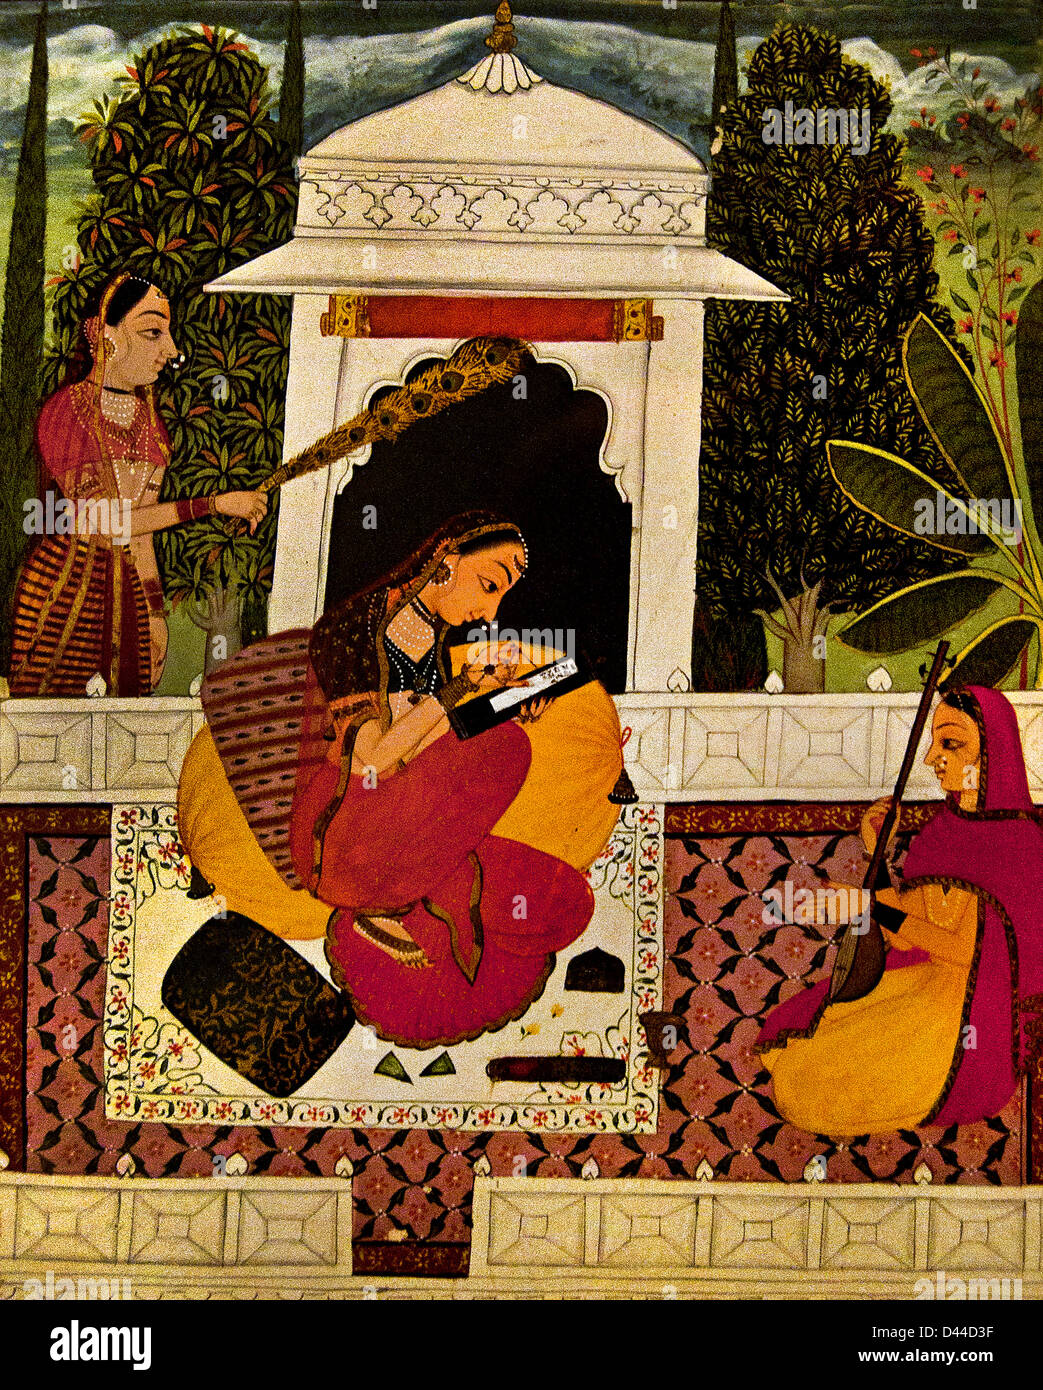 Radha writing a Letter 1700 AD Rajasthani Rajasthan India Stock Photo